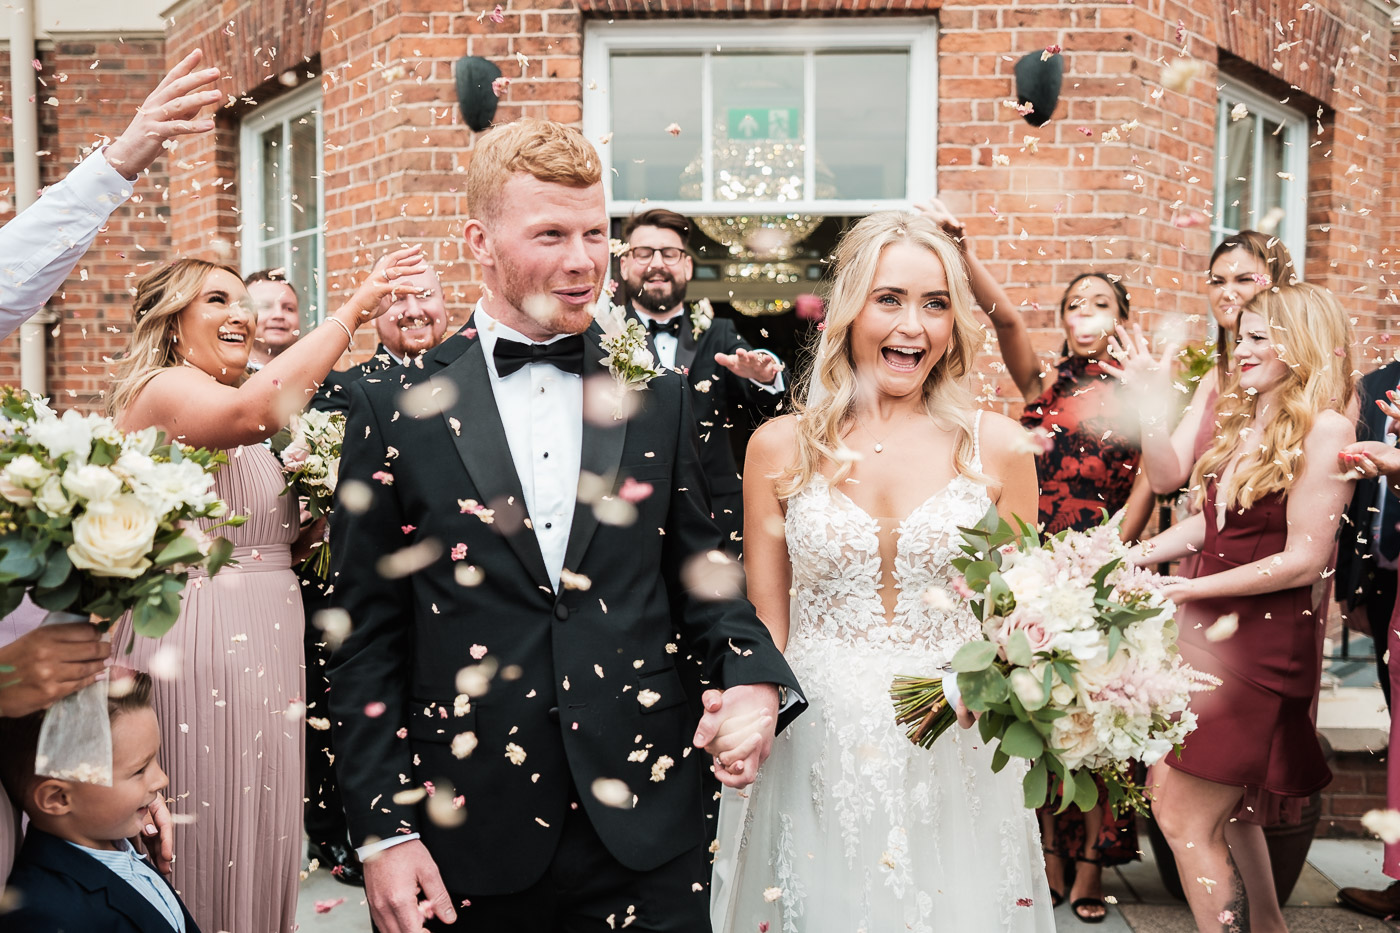 Bride and Groom are showered with confetti after their ceremony at the old palace in chester